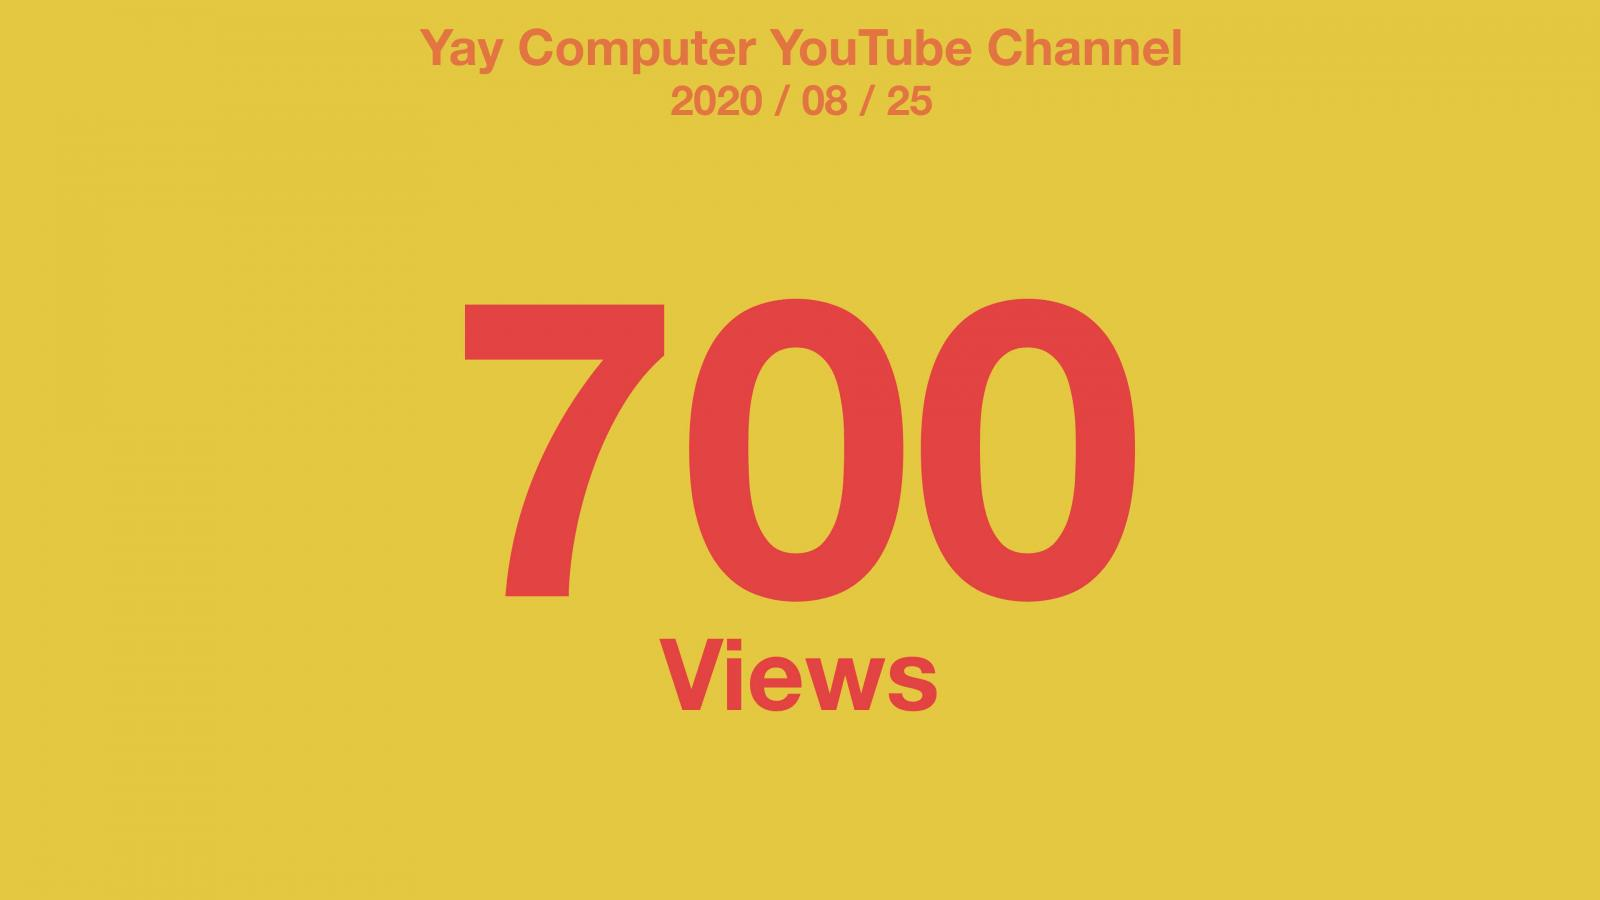 Yellow background with red text: Yay Computer YouTube Channel 2020/08/25 700 Views